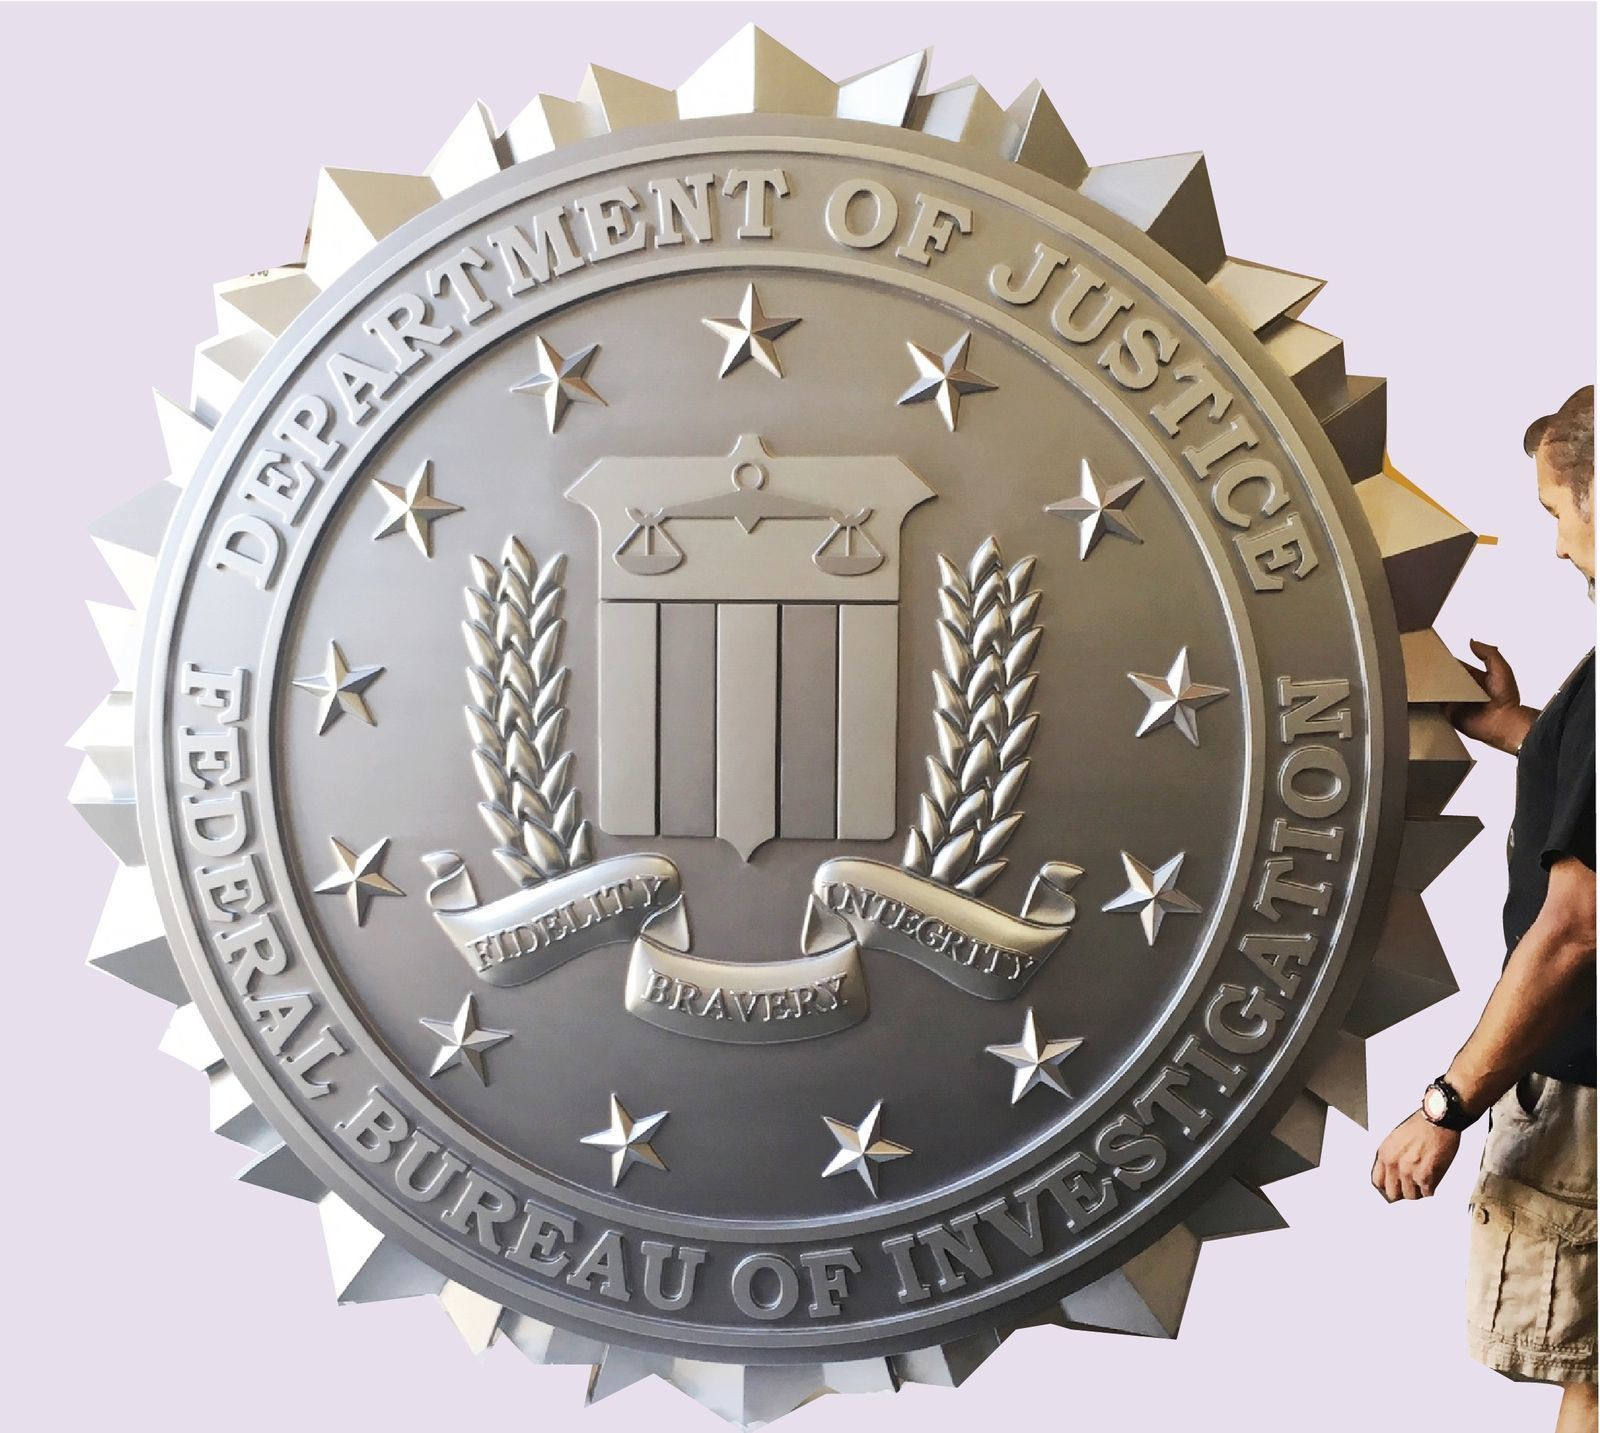 U30362 - Front View of a Large 60 inch Diameter Carved 3-D Carved High-Density-Urethane (HDU) Wall Plaque for the FBI